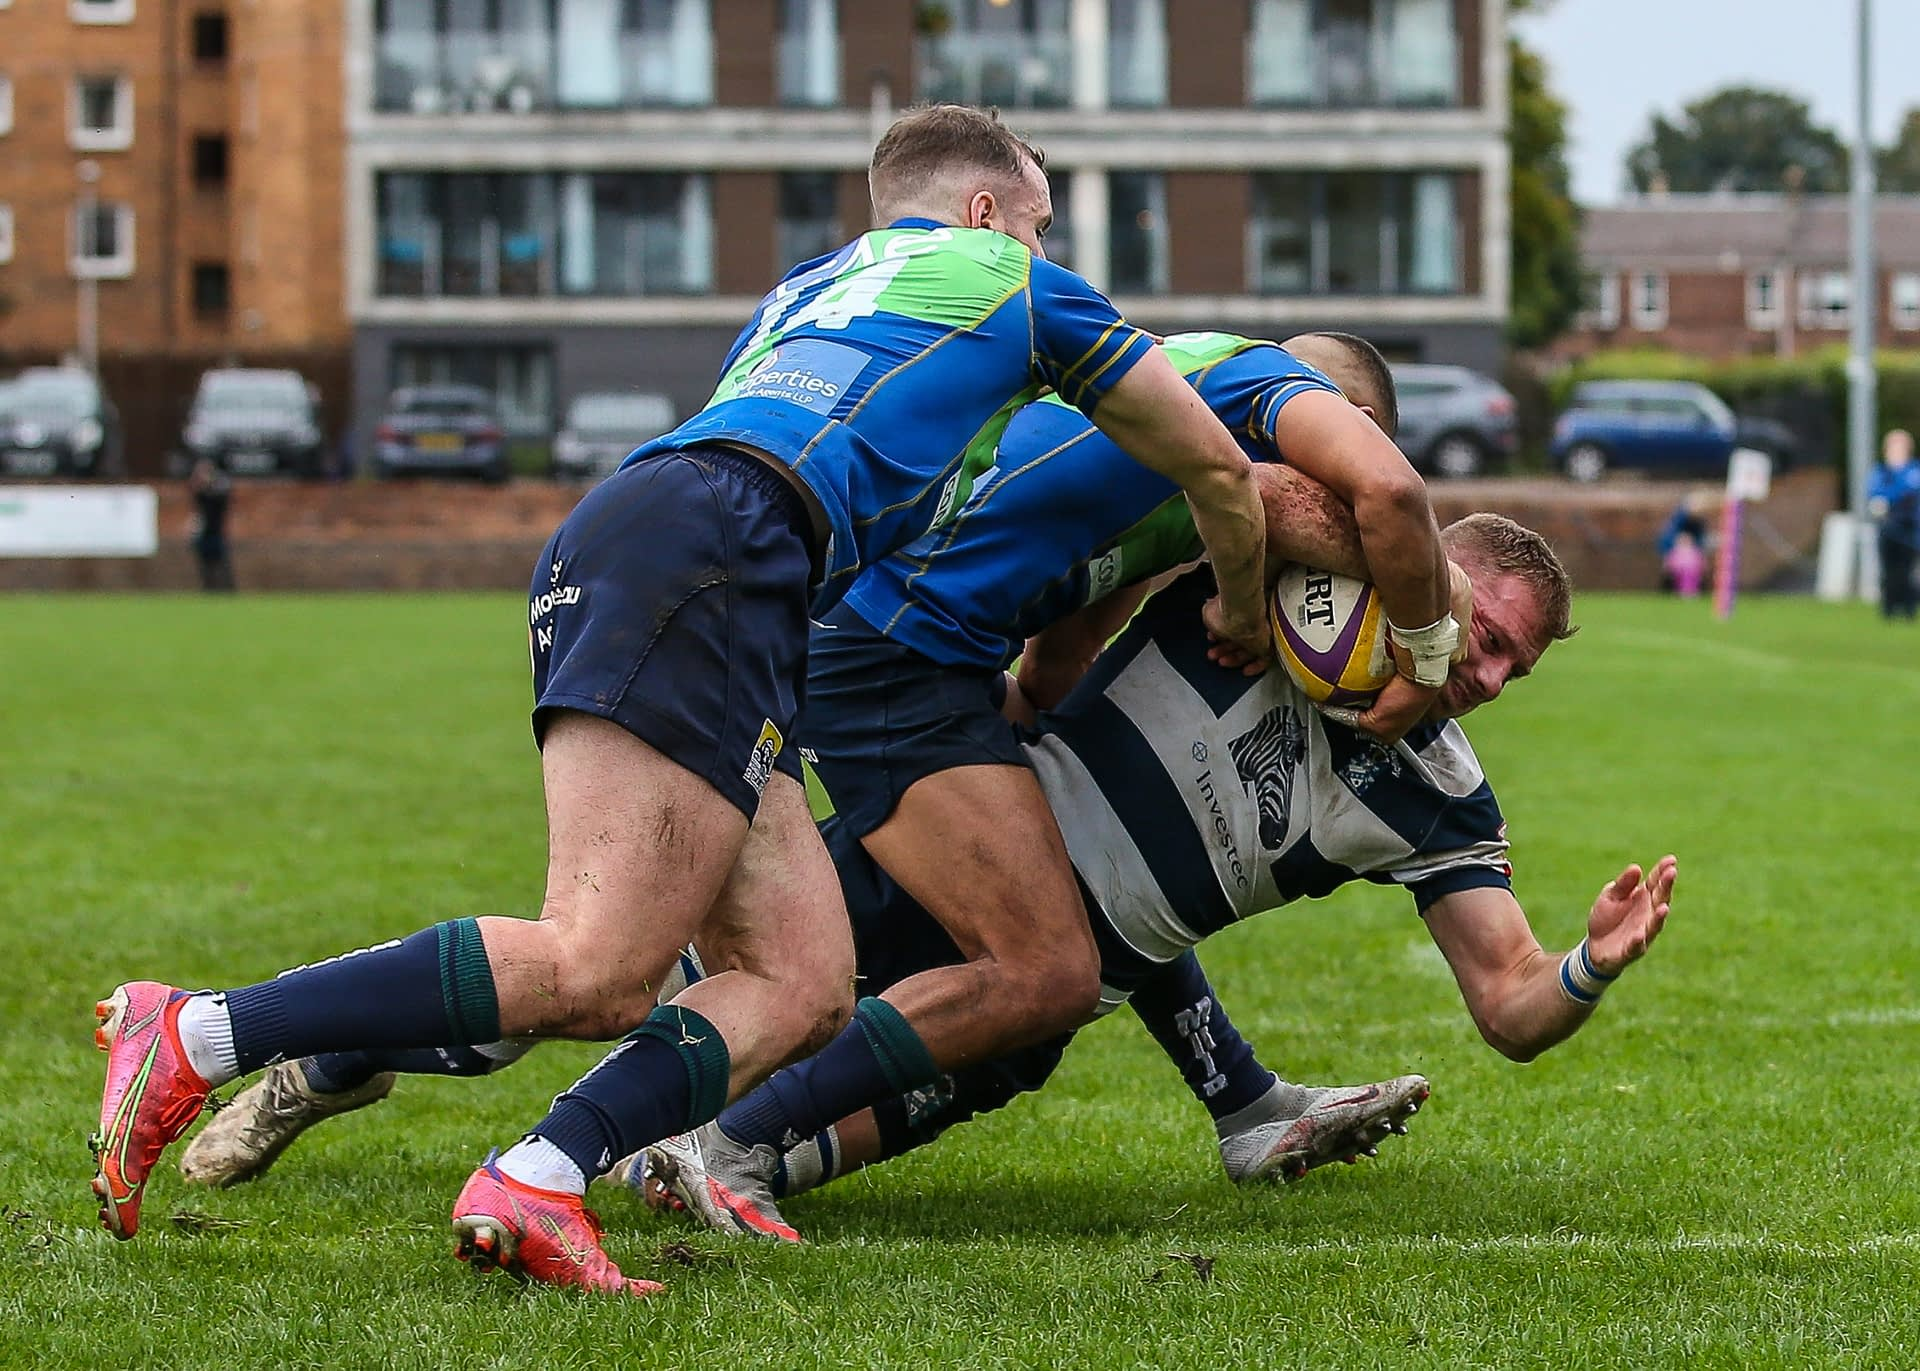 Boroughmuirs Kaleem Barreto and Callum Ramm tackle Heriots Captain Iain Wilson just short of the try line .FOSROC Super 6 match between Heriot's Rugby and Boroughmuir Bears at Goldenacre, Edinburgh on 09/10/2021.   (Photo: 39 Design Photography)